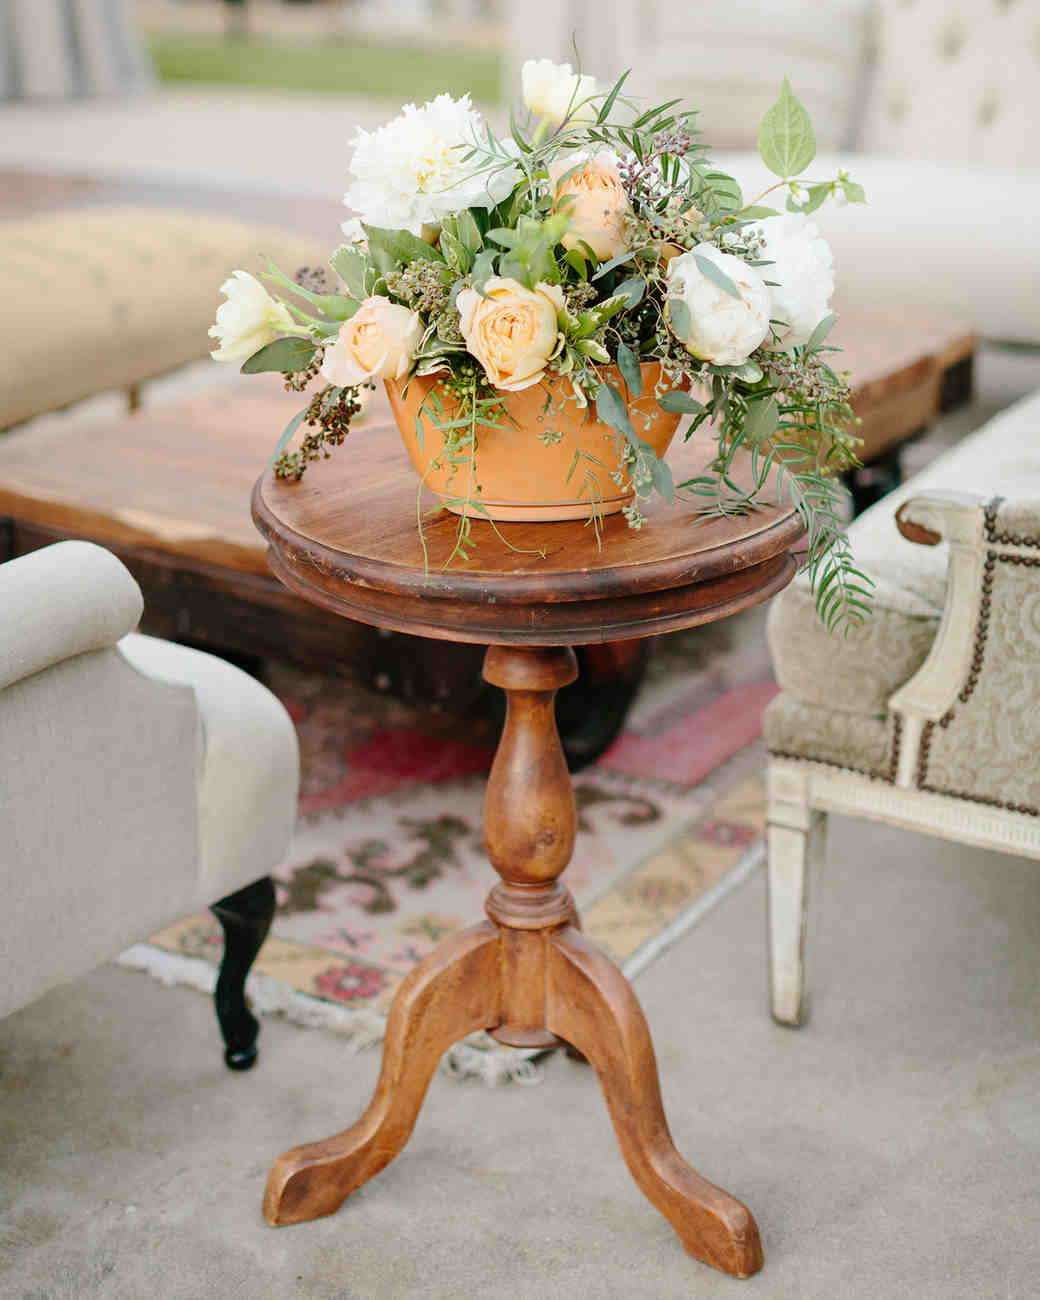 terra cotta decor lounge accents wooden table